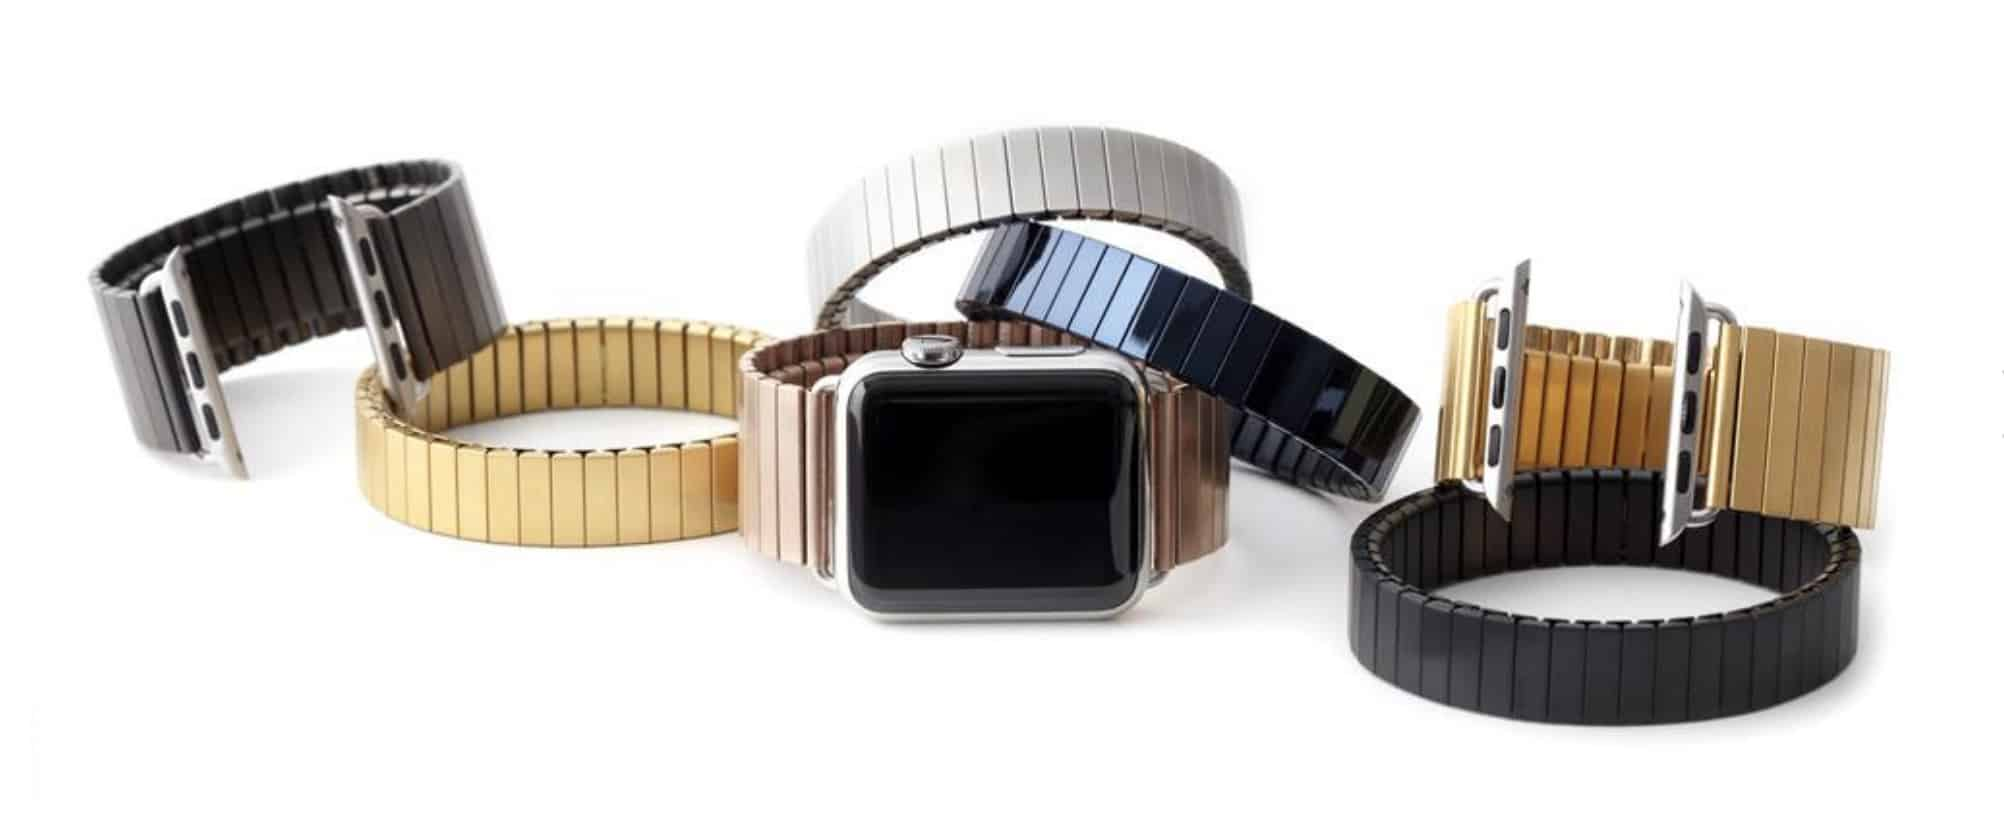 Rilee & Lo spices up your Apple Watch with sexy, sleek stainless steel watch bands.